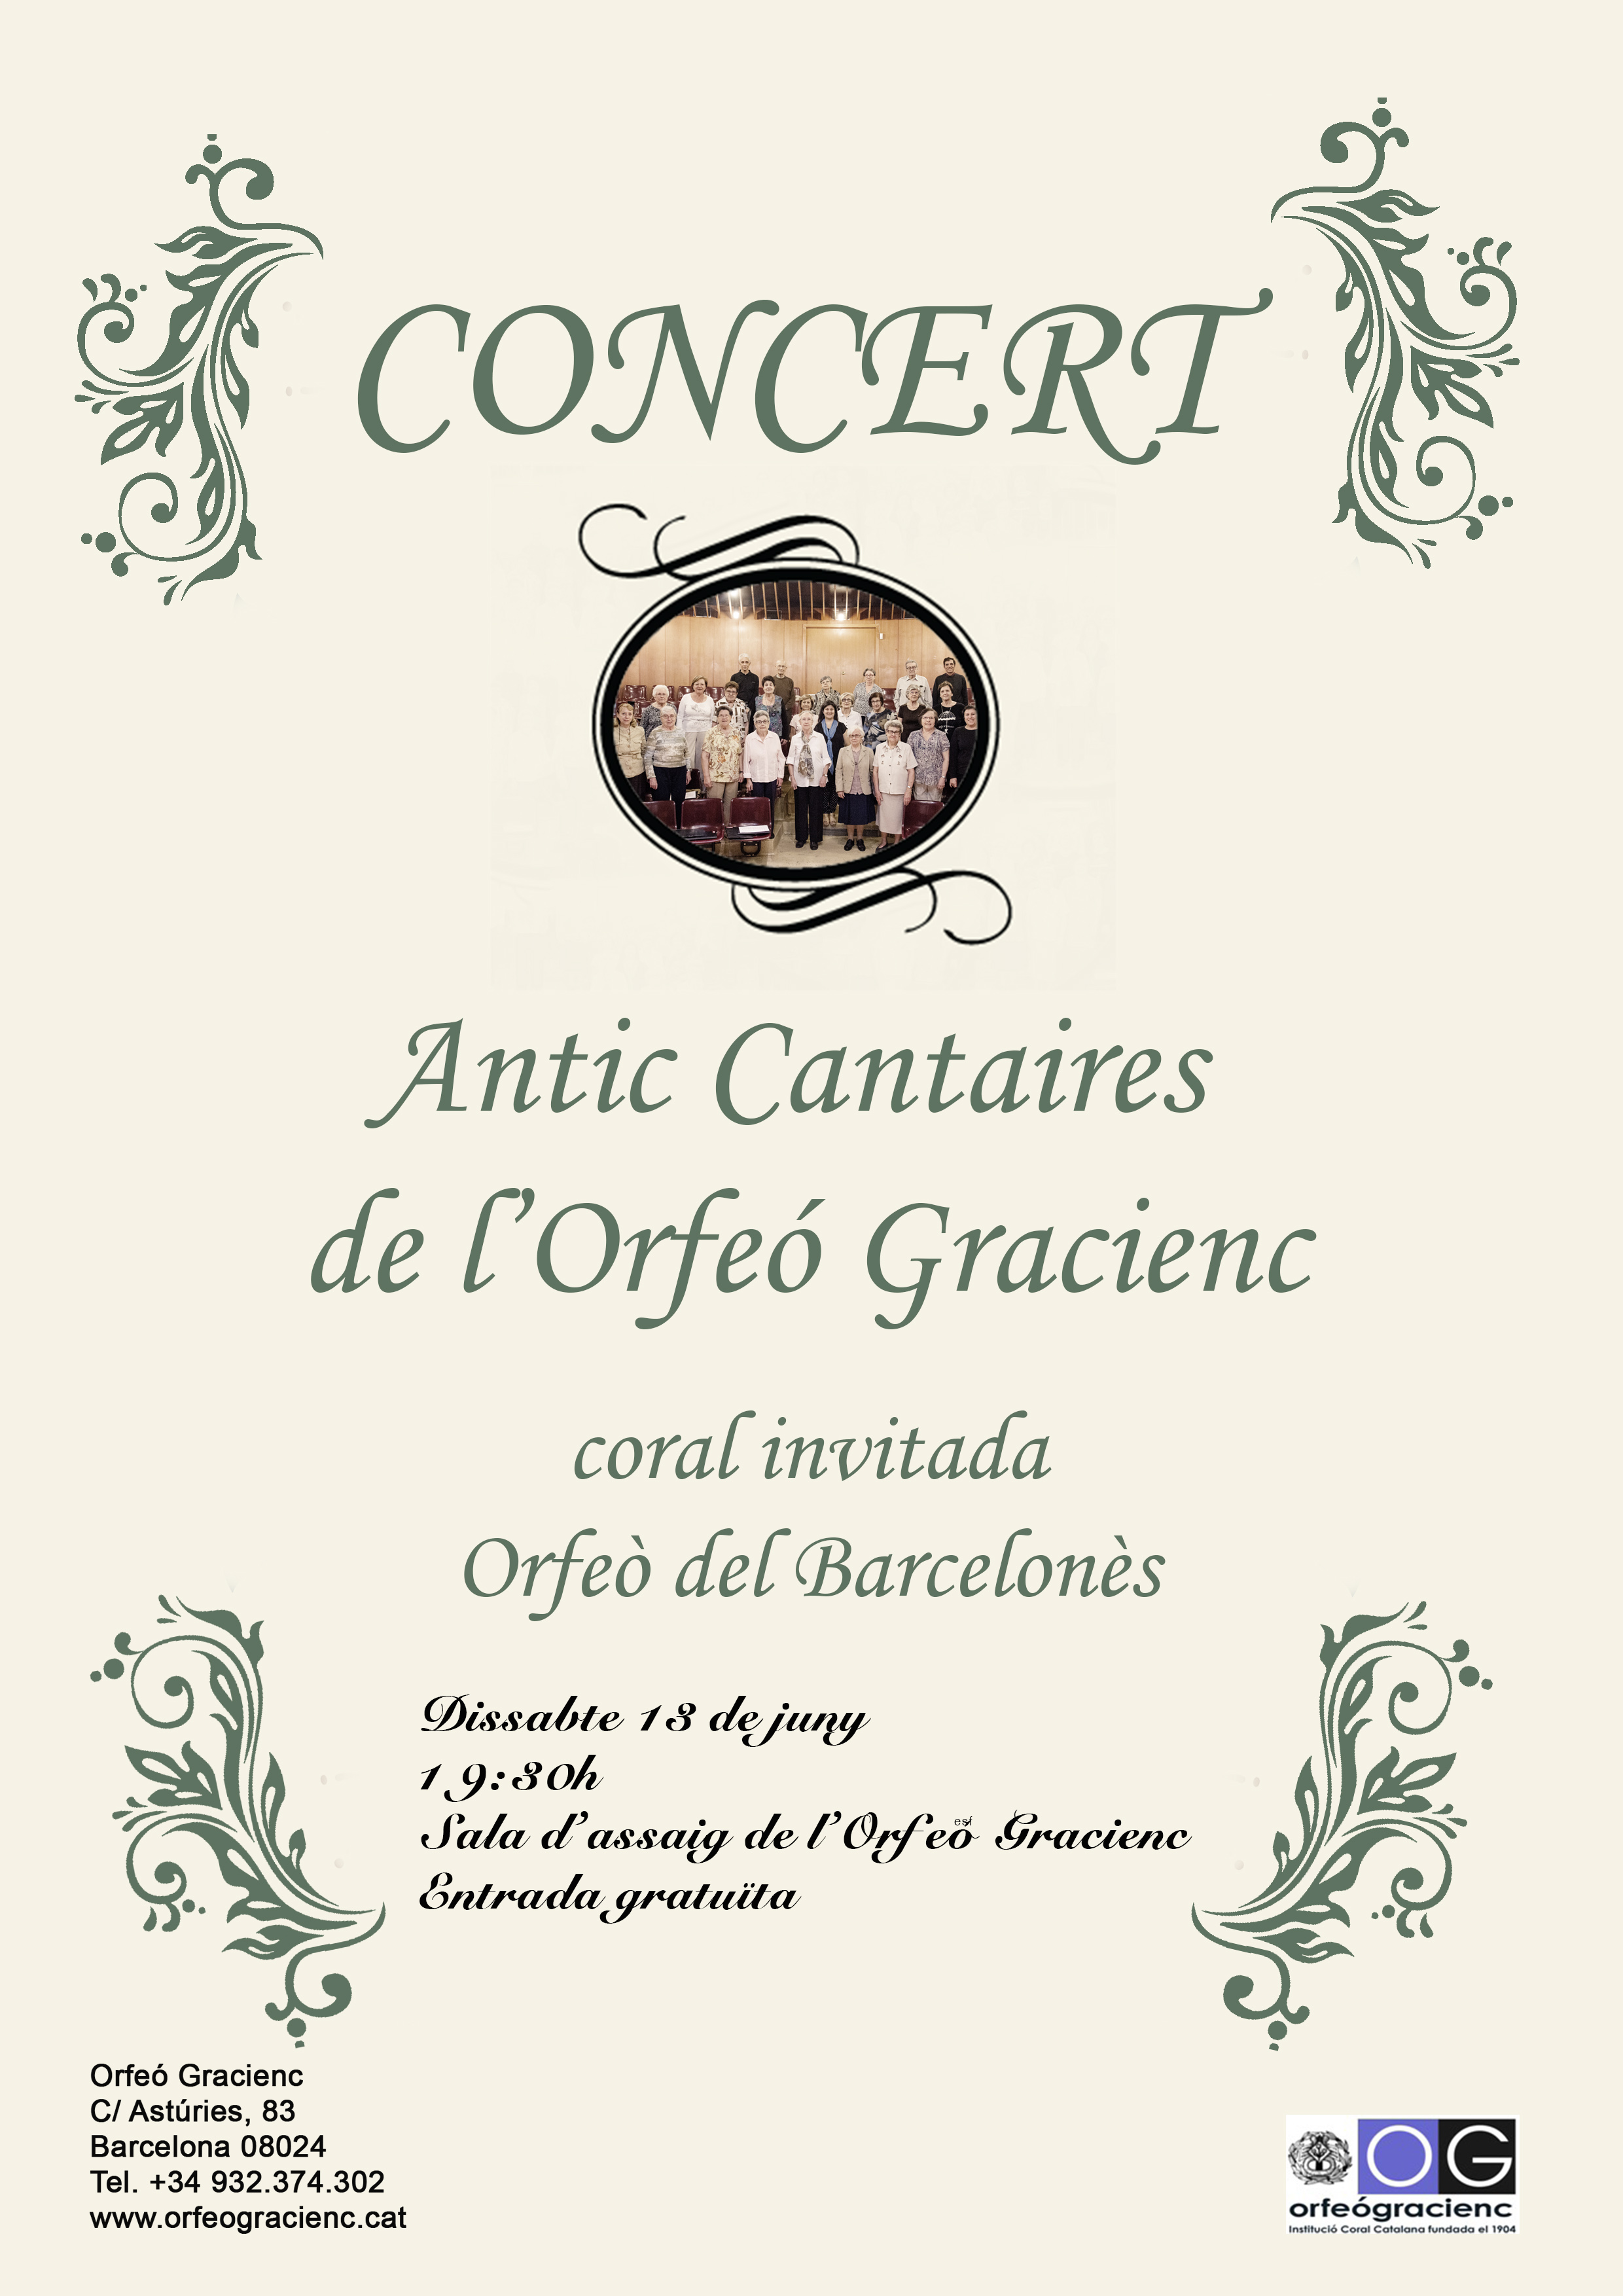 2015 antic cantaires concert